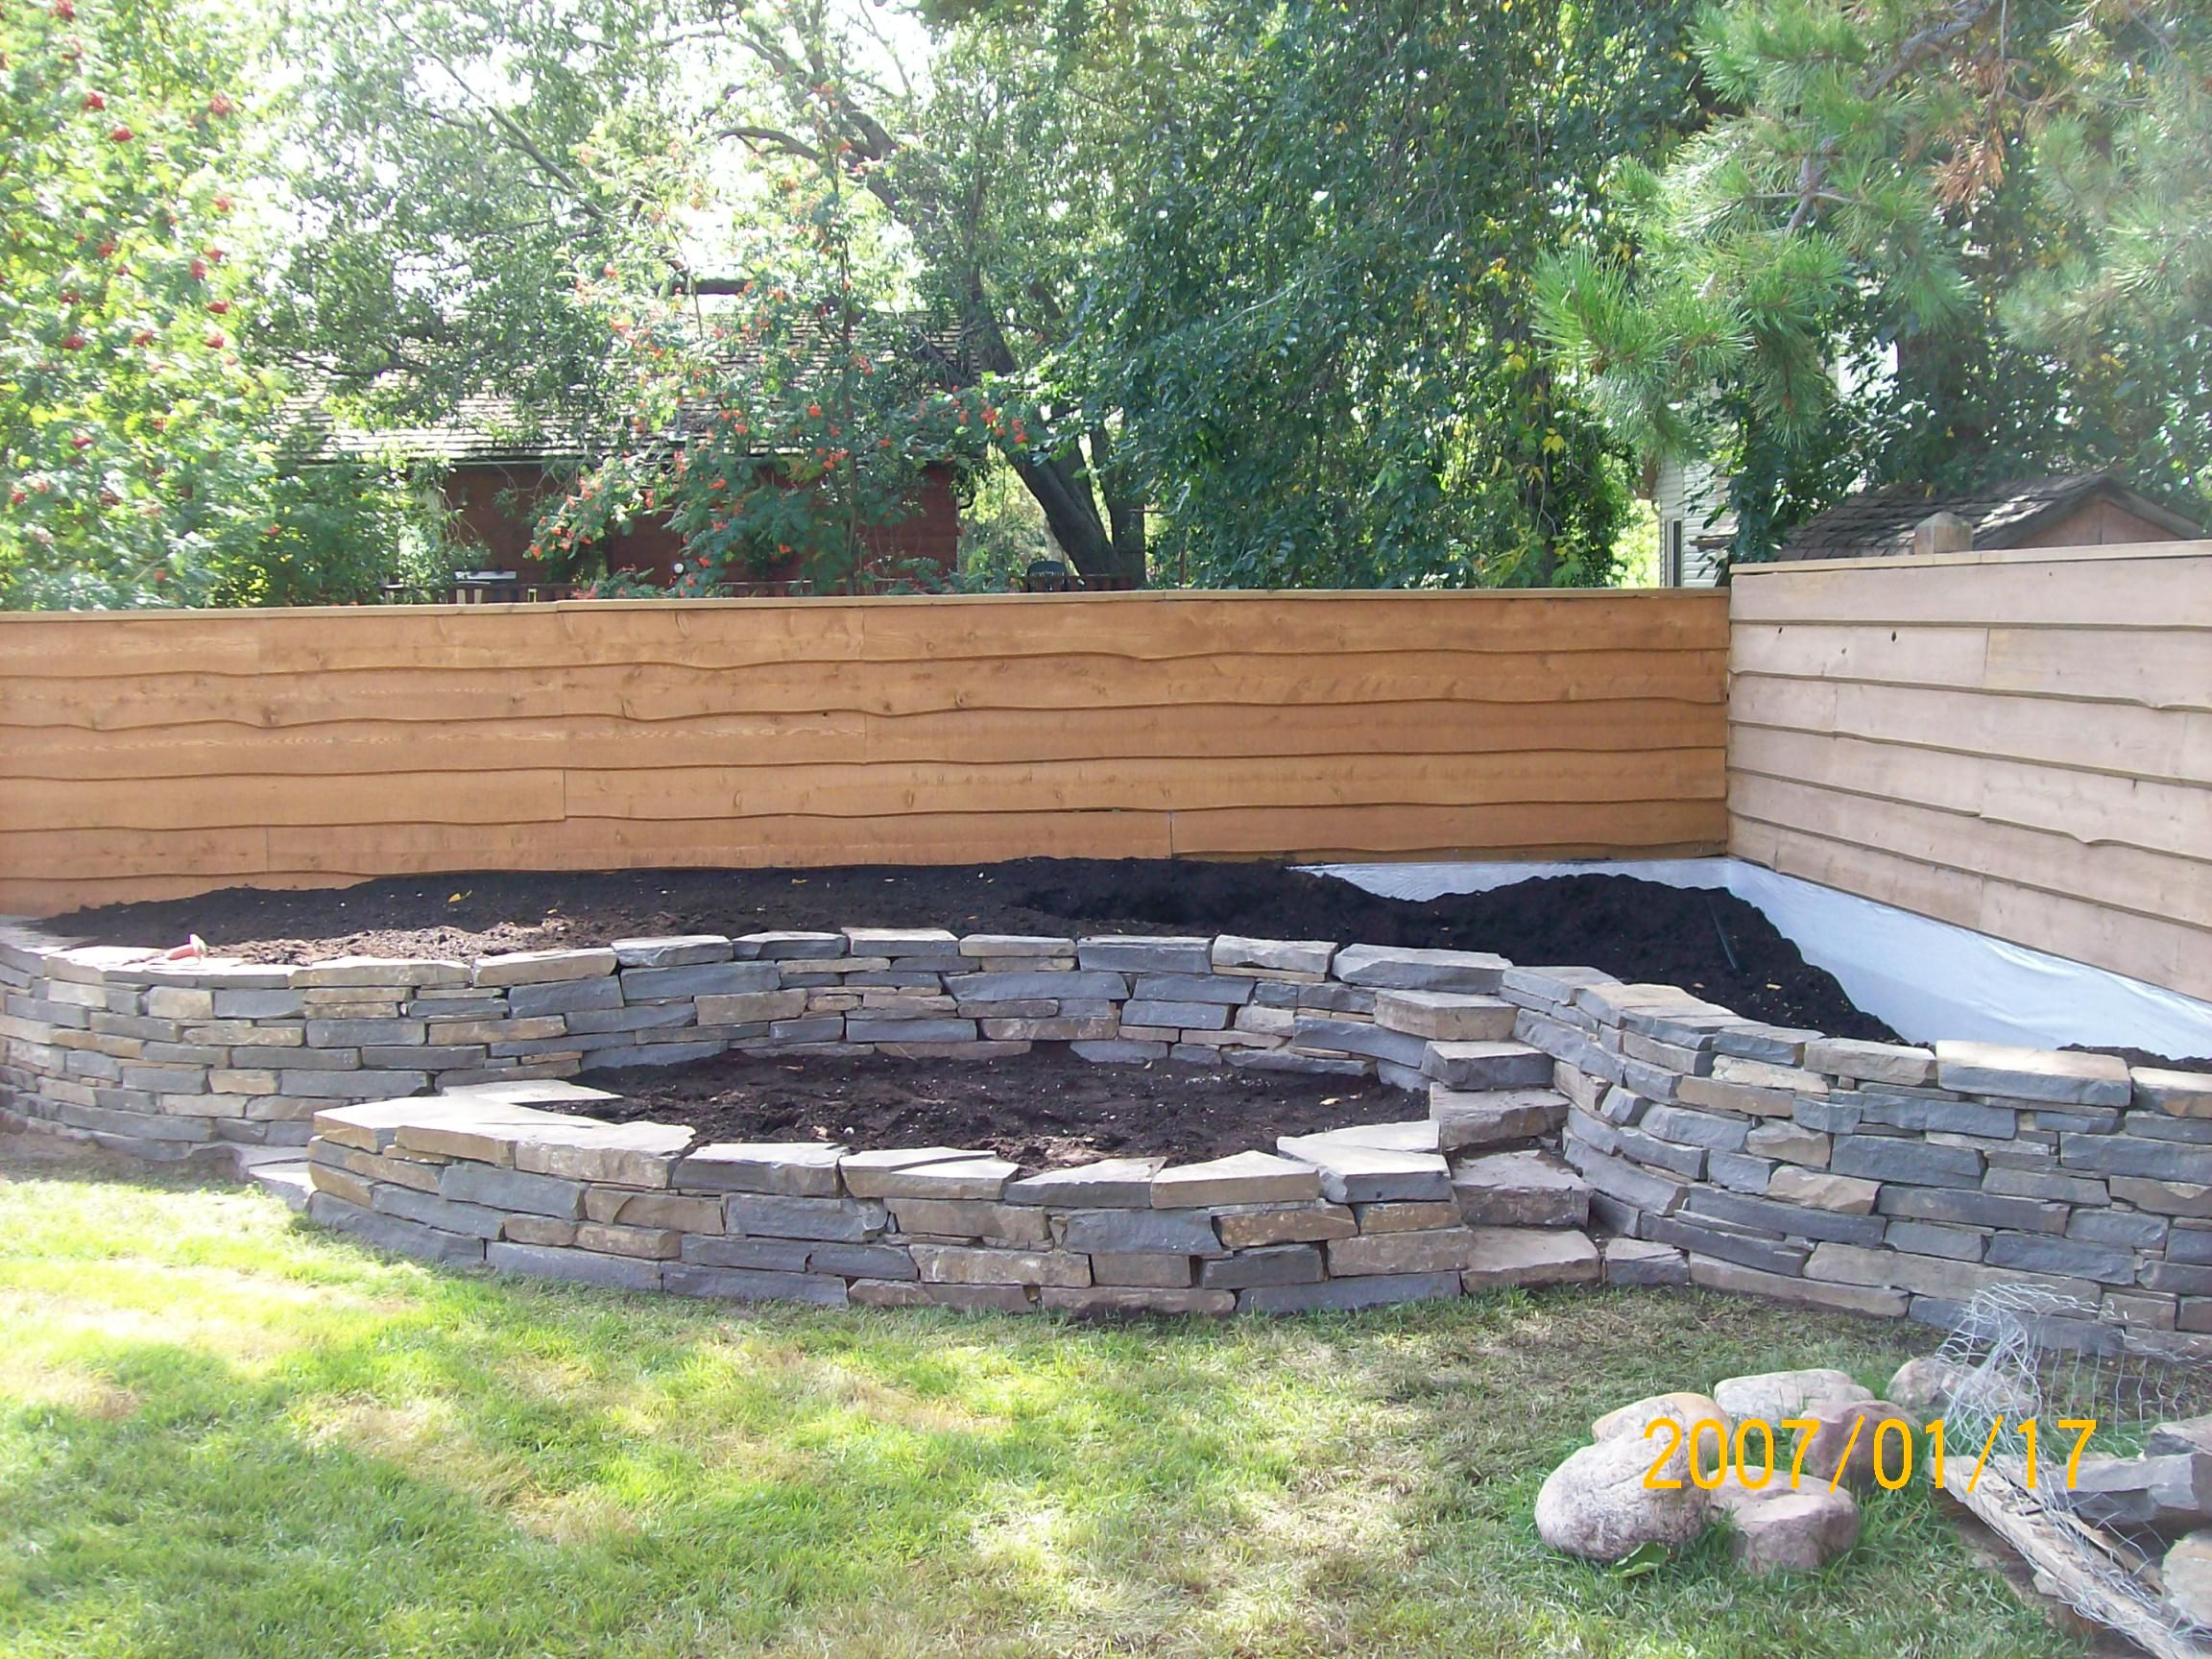 Another natural stone wall I built. I wasn't very